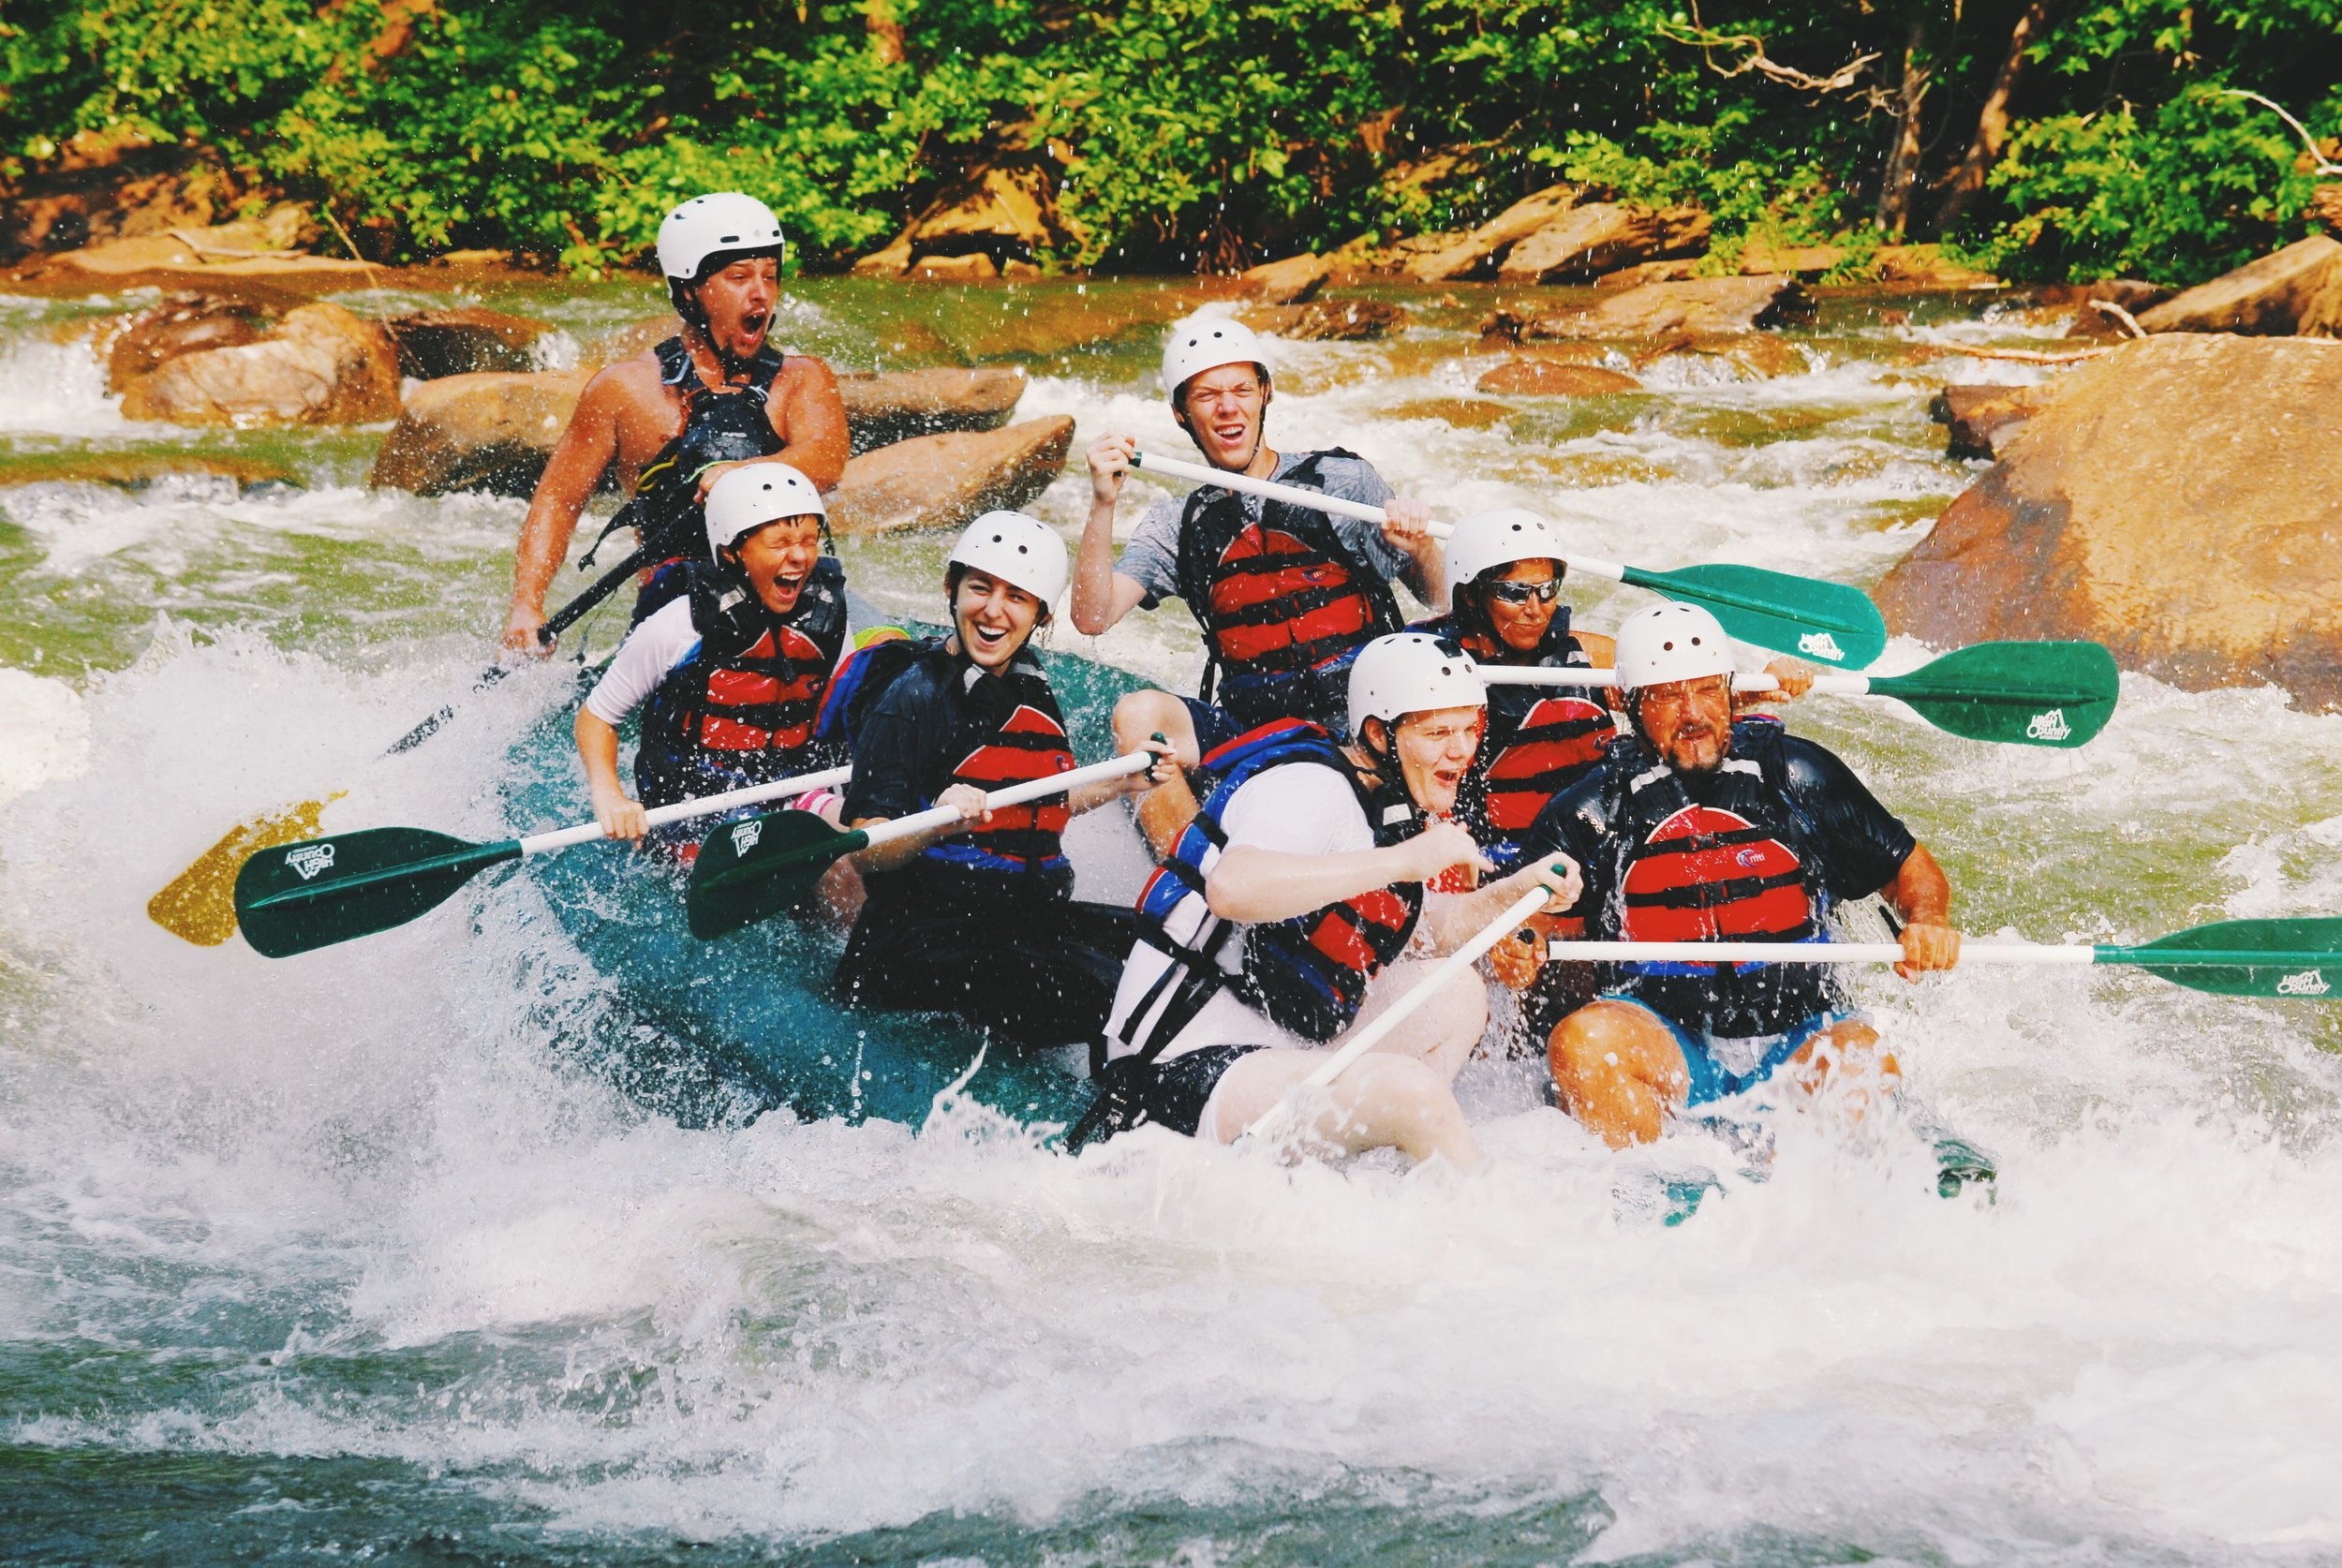 went rafting on the Ocoee River...